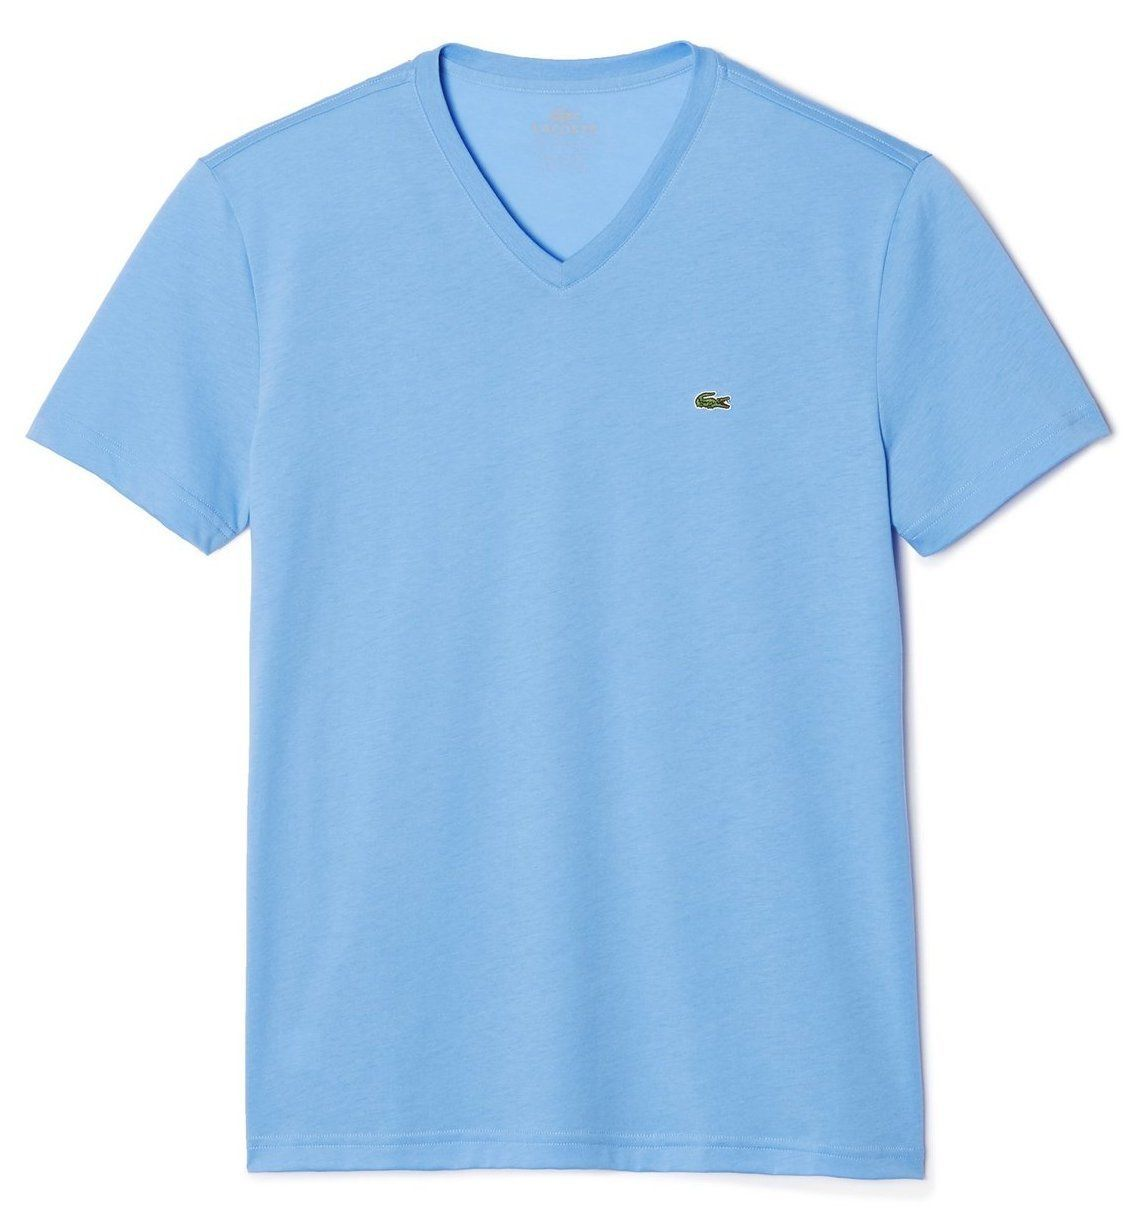 BRAND NEW LACOSTE MEN'S PREMIUM PIMA COTTON SPORT V-NECK SHIRT T-SHIRT BLUE LAKE